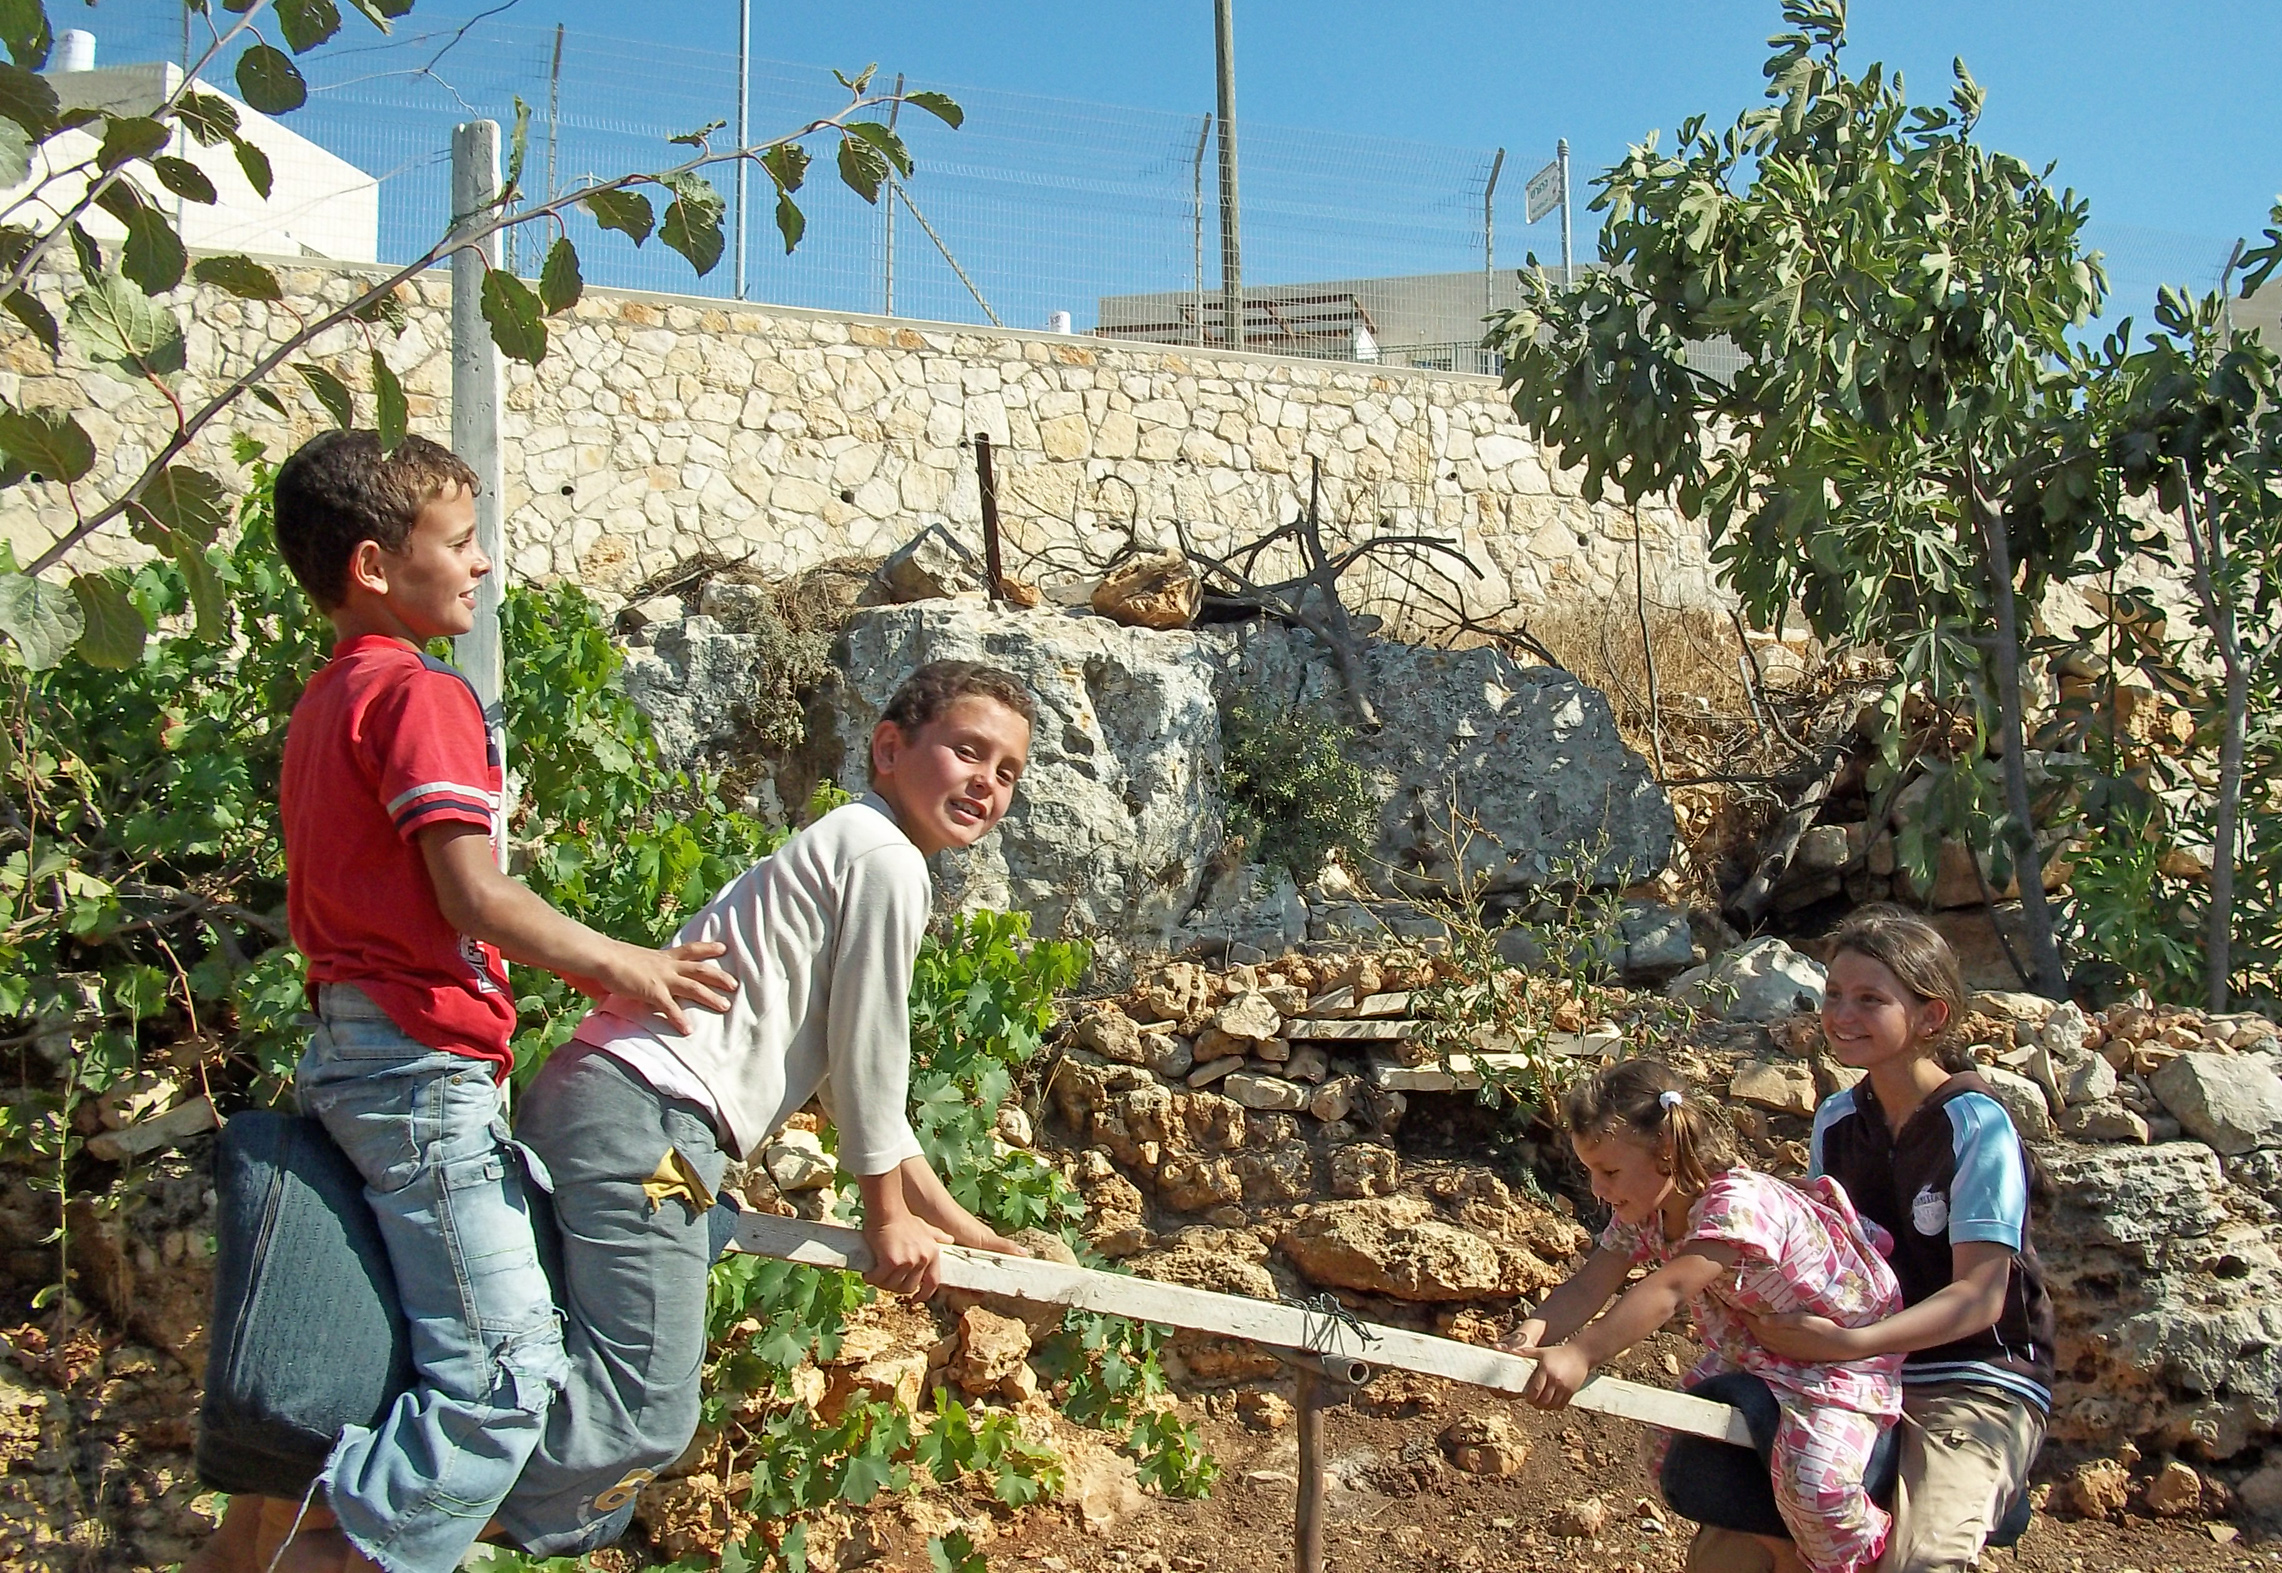 Children of the Saed family playing in Khallet Zakariya. Neighbouring Israeli settlement Alon Shvut can be seen in the background